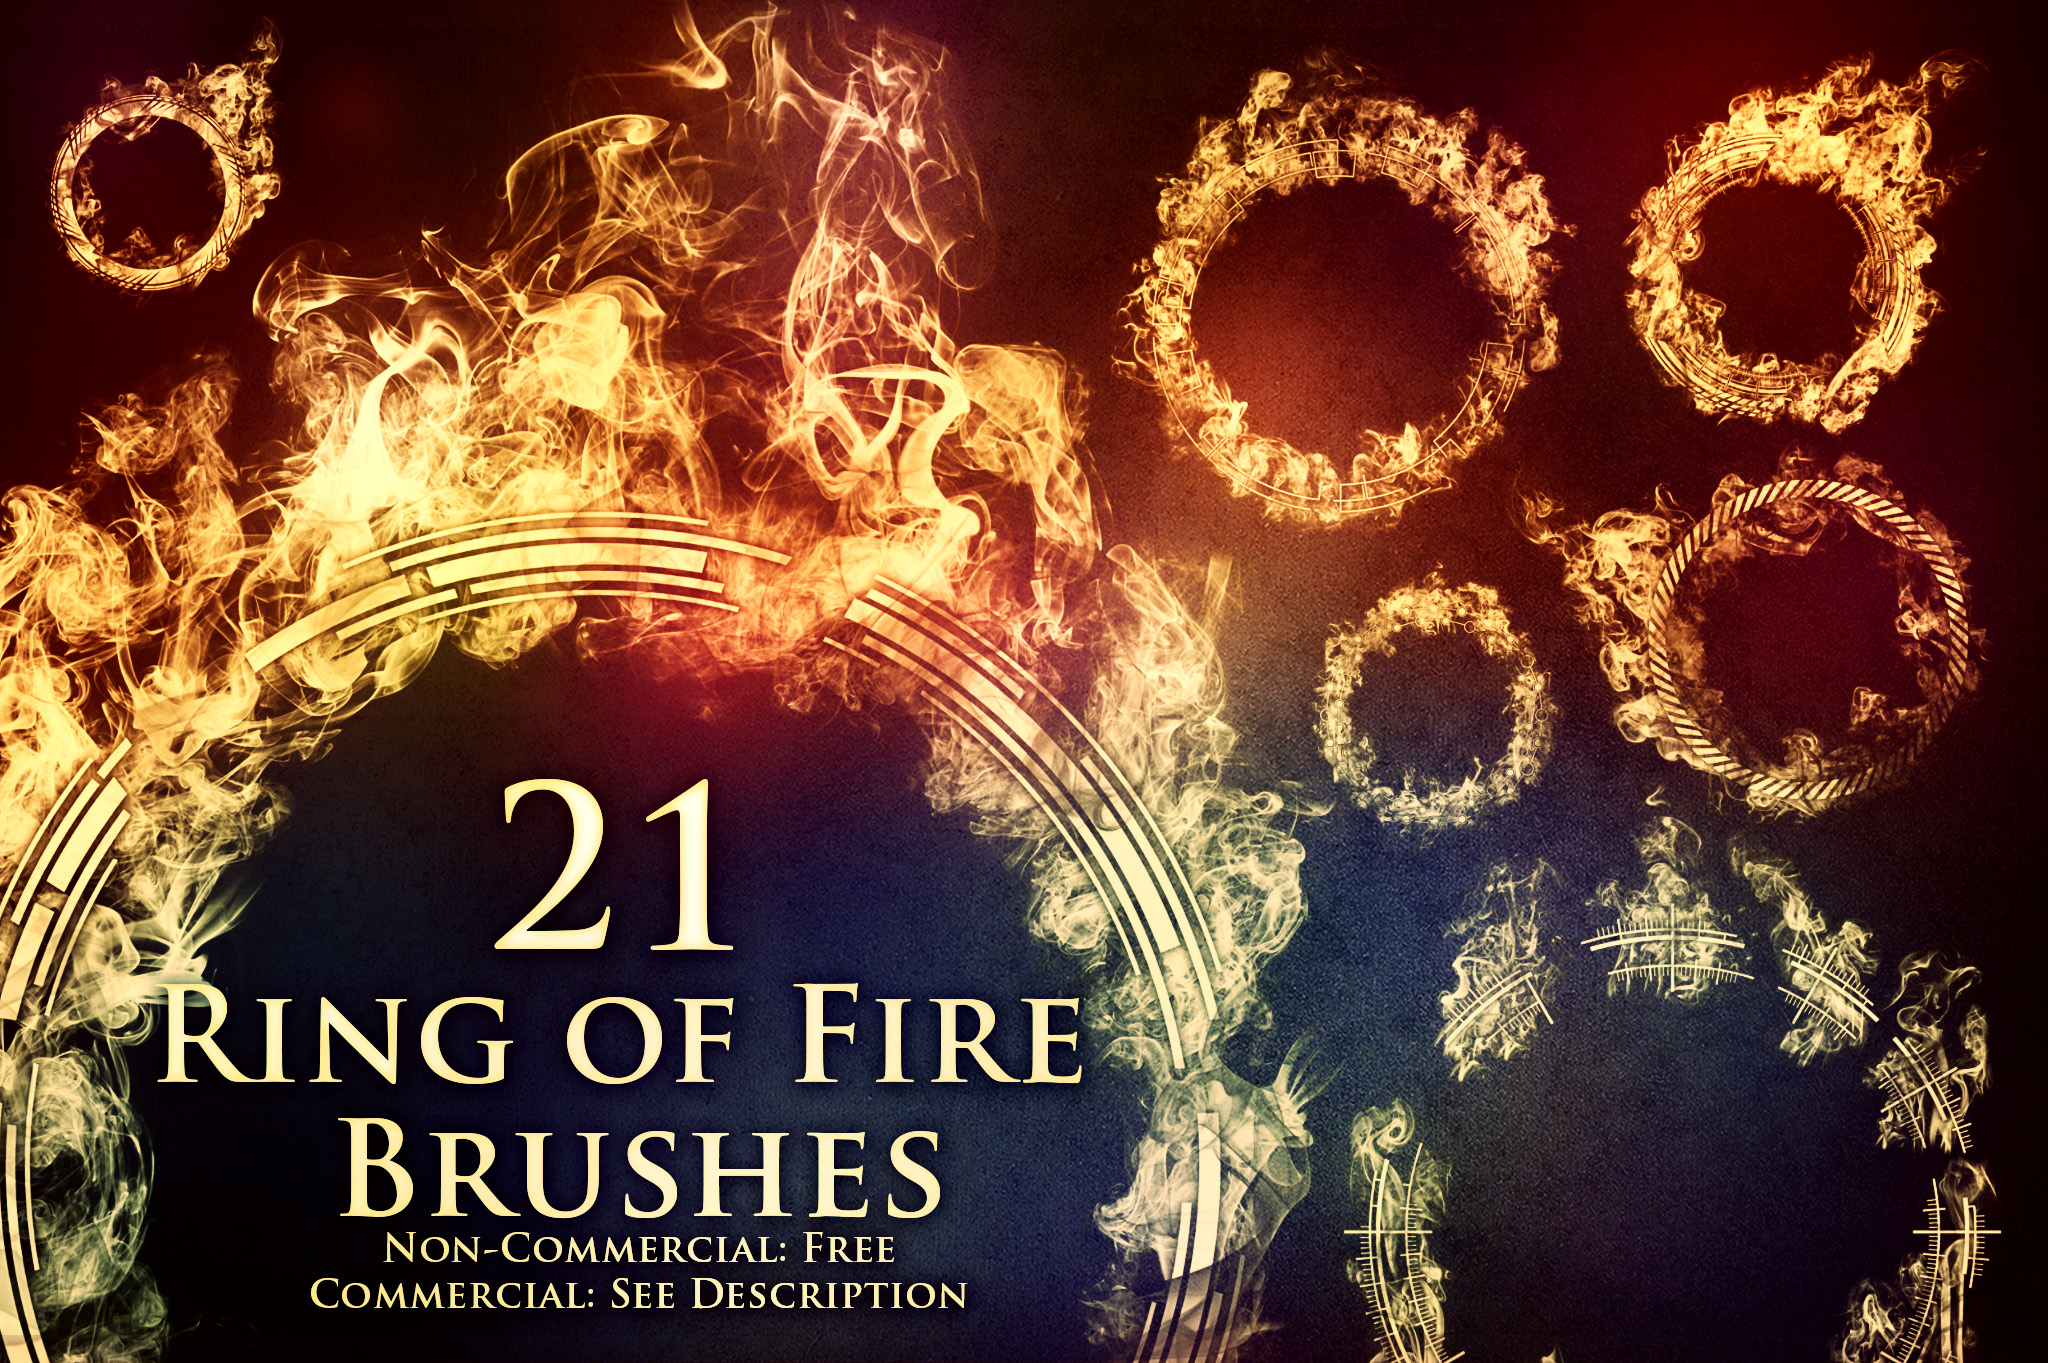 21 Ring of Fire Brushes by XResch